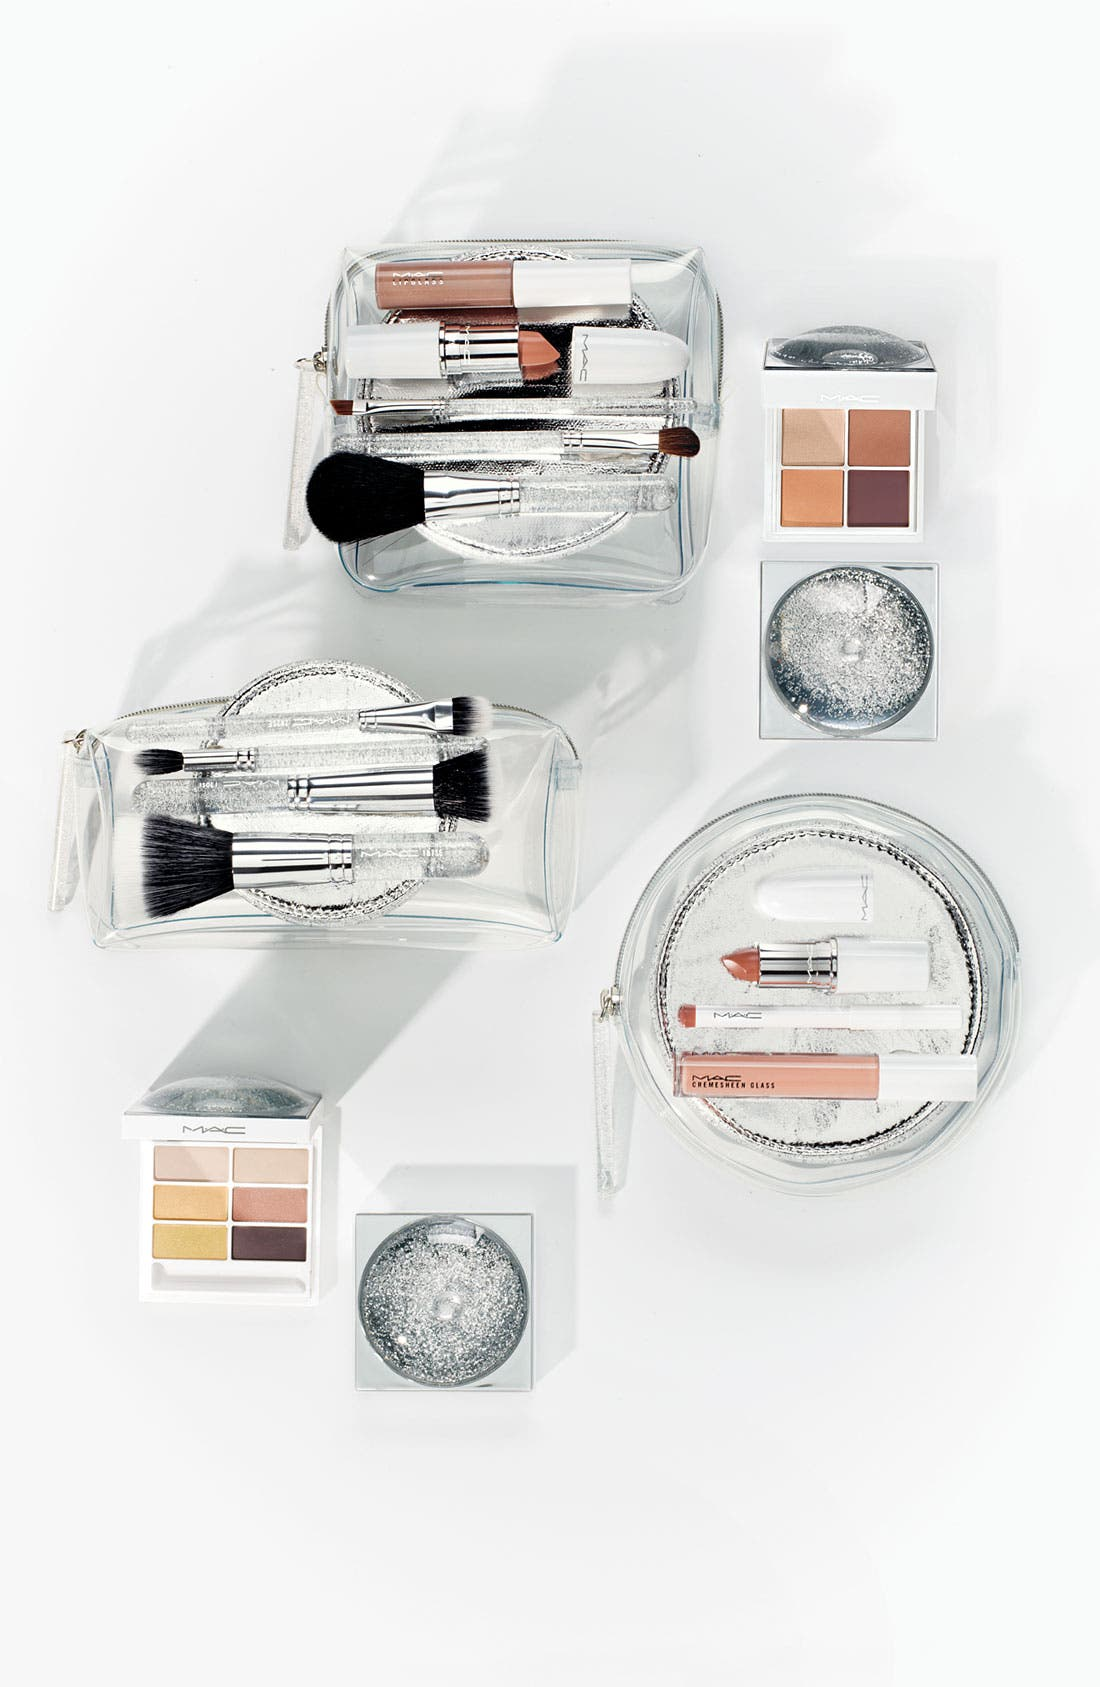 M·A·C 'Iced Delights - Sultry' Lip Bag,                         Main,                         color, 000